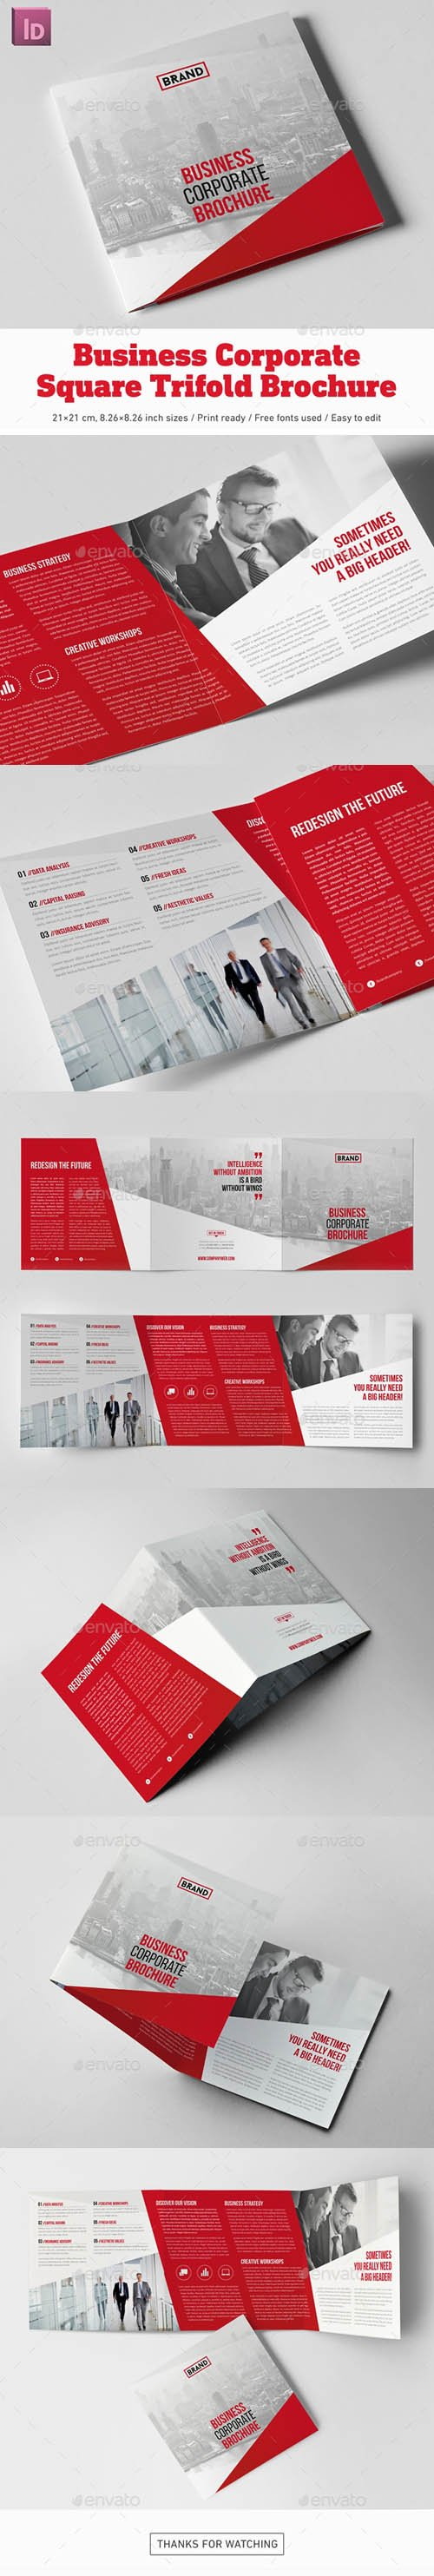 Graphicriver - Business Corporate Square Trifold Brochure 20239753